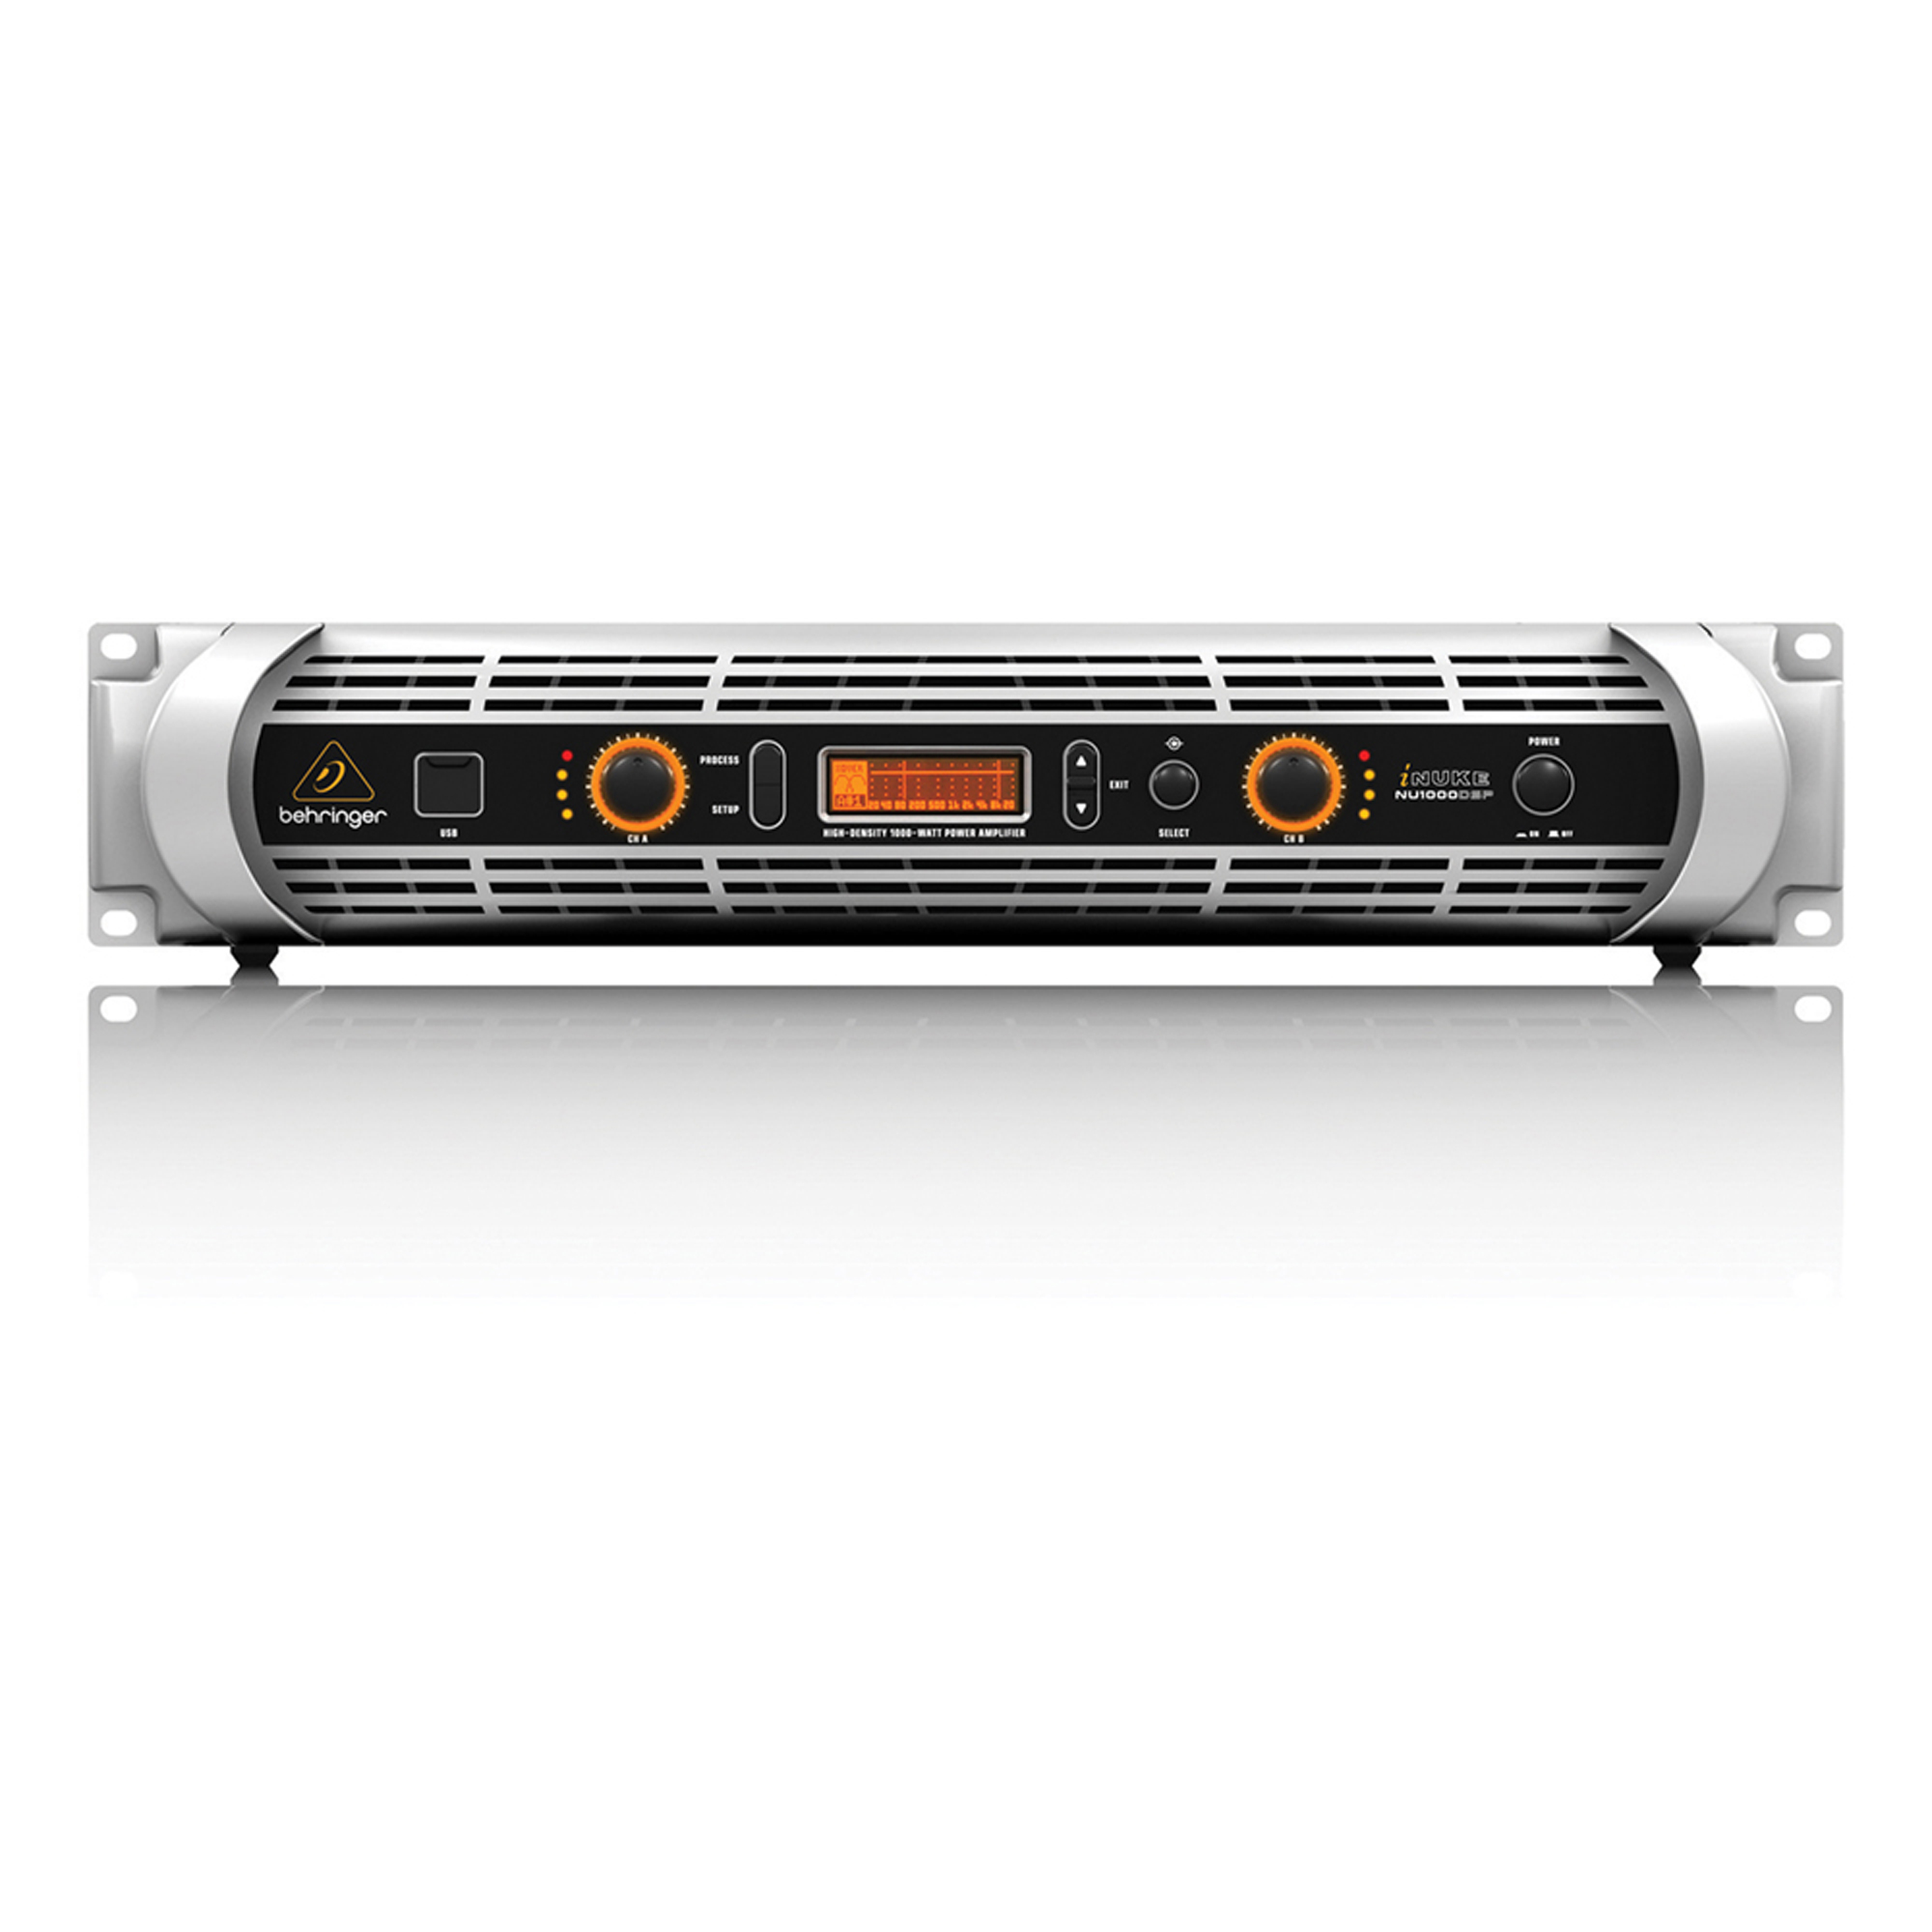 behringer inuke nu1000dsp stereo pa amplifier with dsp 1000w. Black Bedroom Furniture Sets. Home Design Ideas